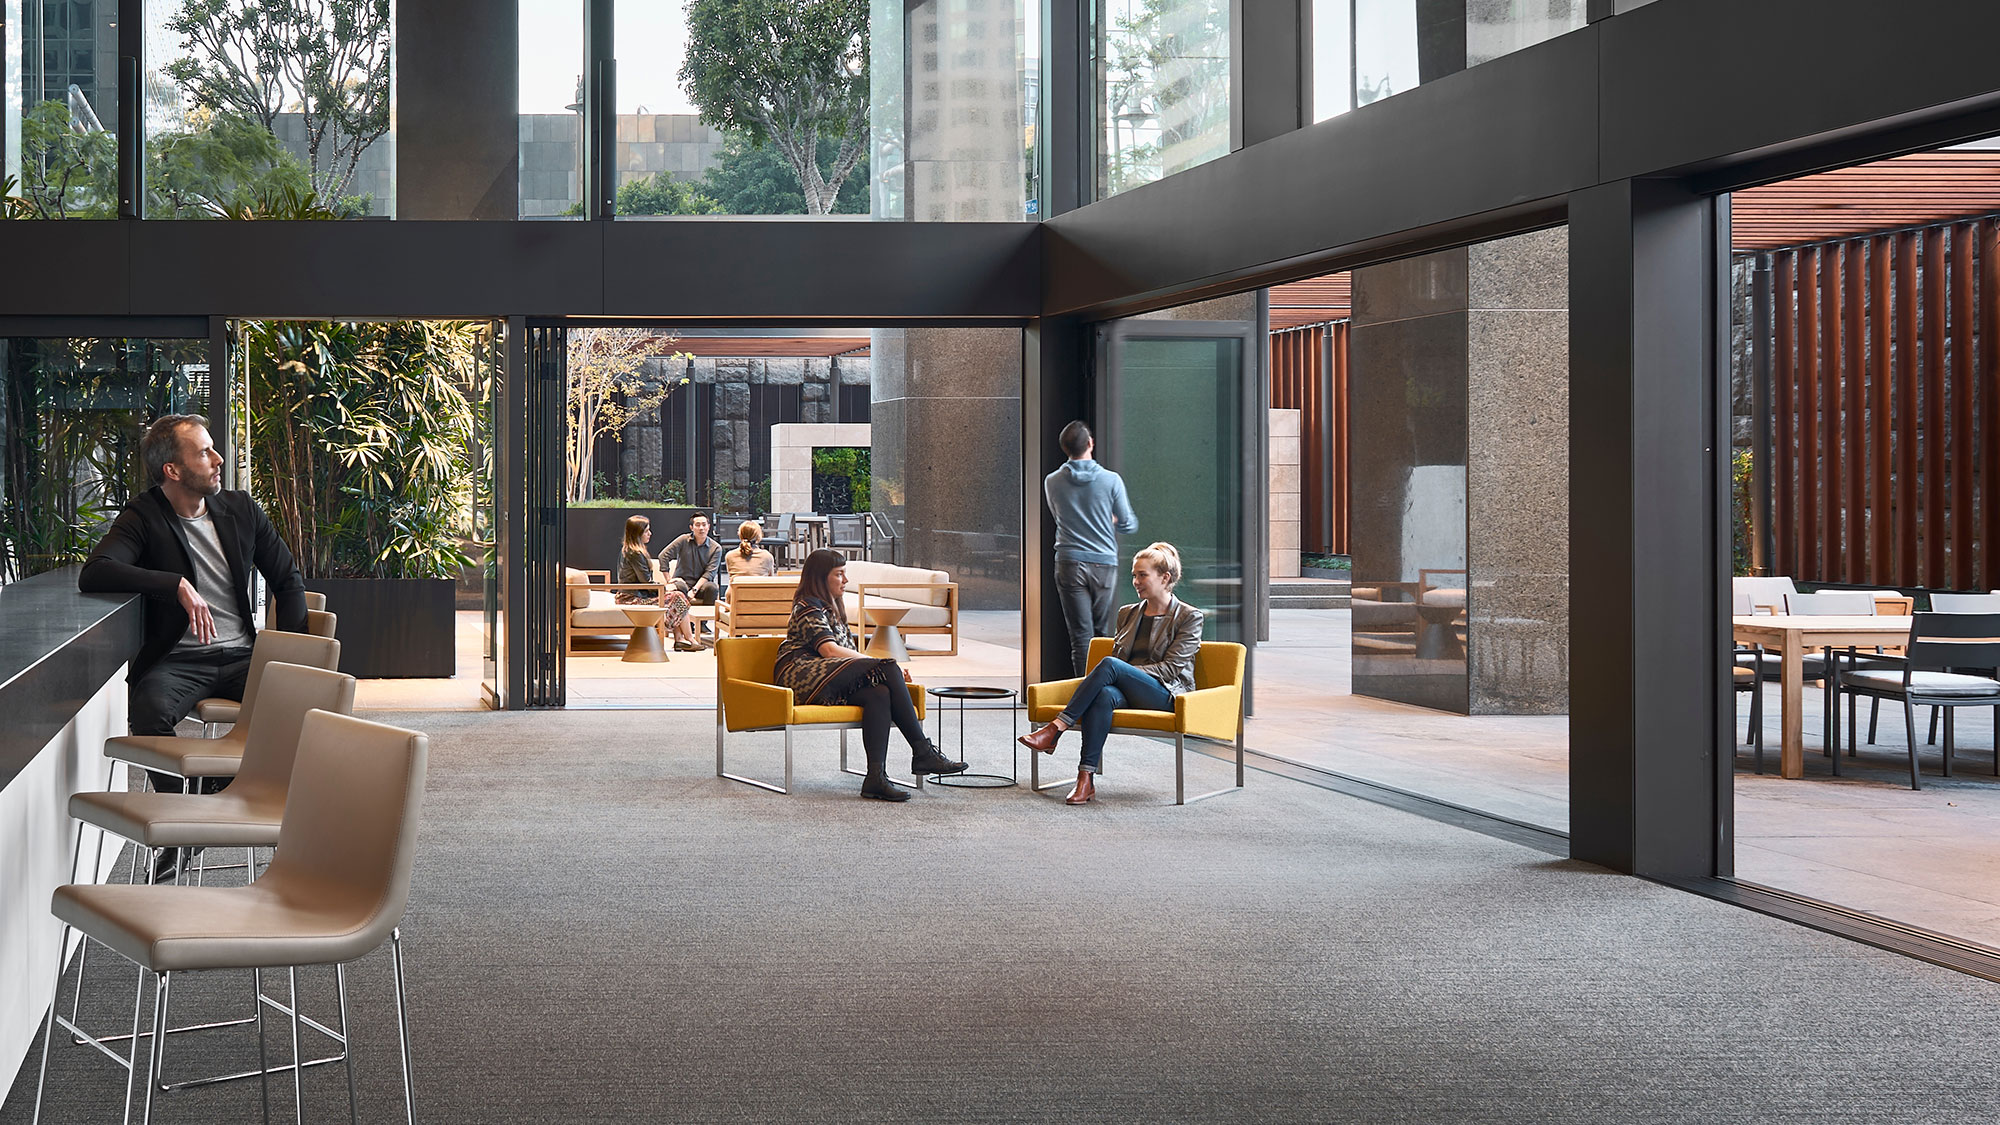 This office lobby introduces indoor and outdoor space.